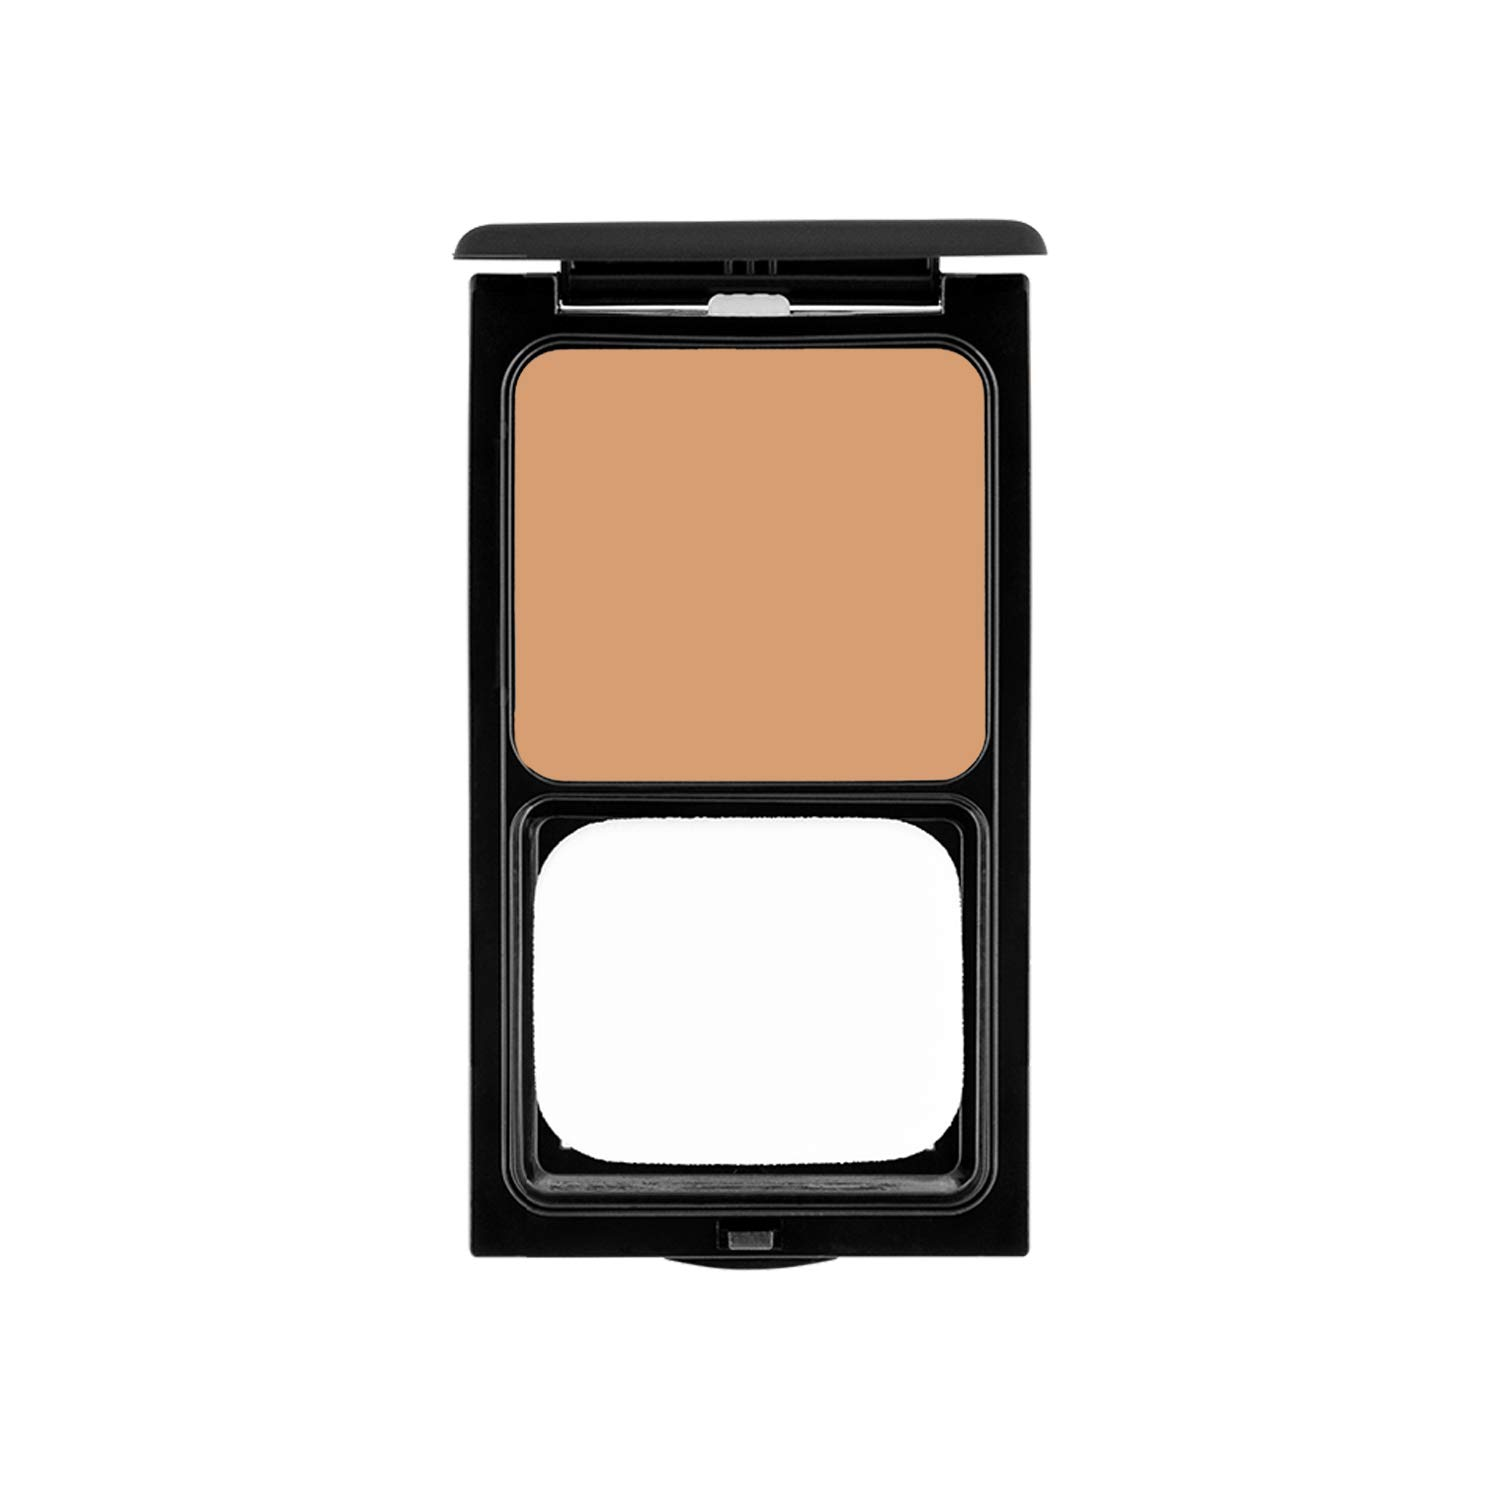 Cream to Powder Foundation Compact by Sacha Cosmetics, Best Natural Matte Makeup to give Flawless Looking Skin, Medium to Full Coverage, Normal to Oily Skin, 0.45 oz, Pure Beige